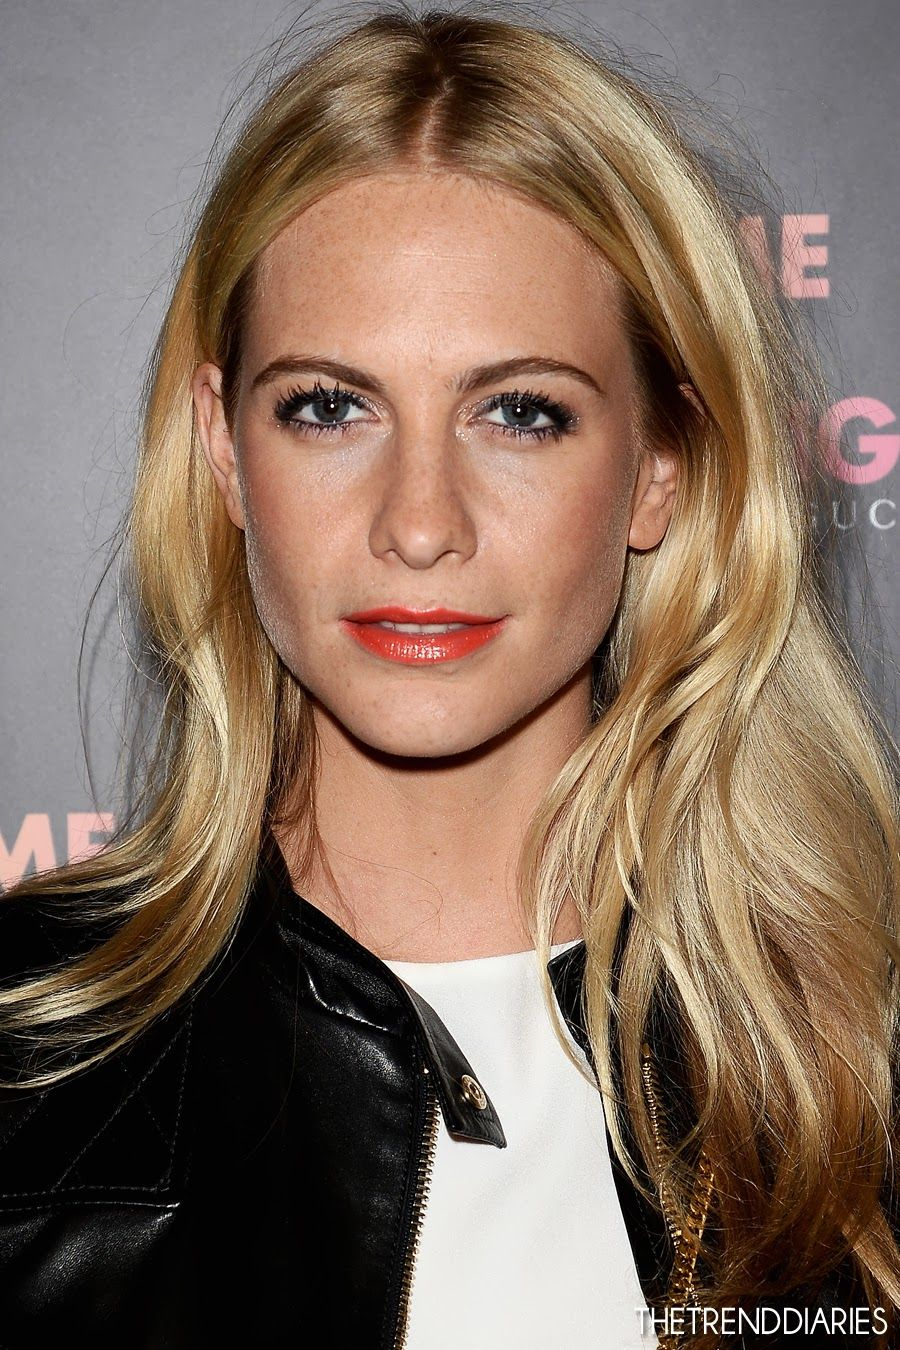 Poppy Delevingne - 2020 Regular blond hair & chic hair style.